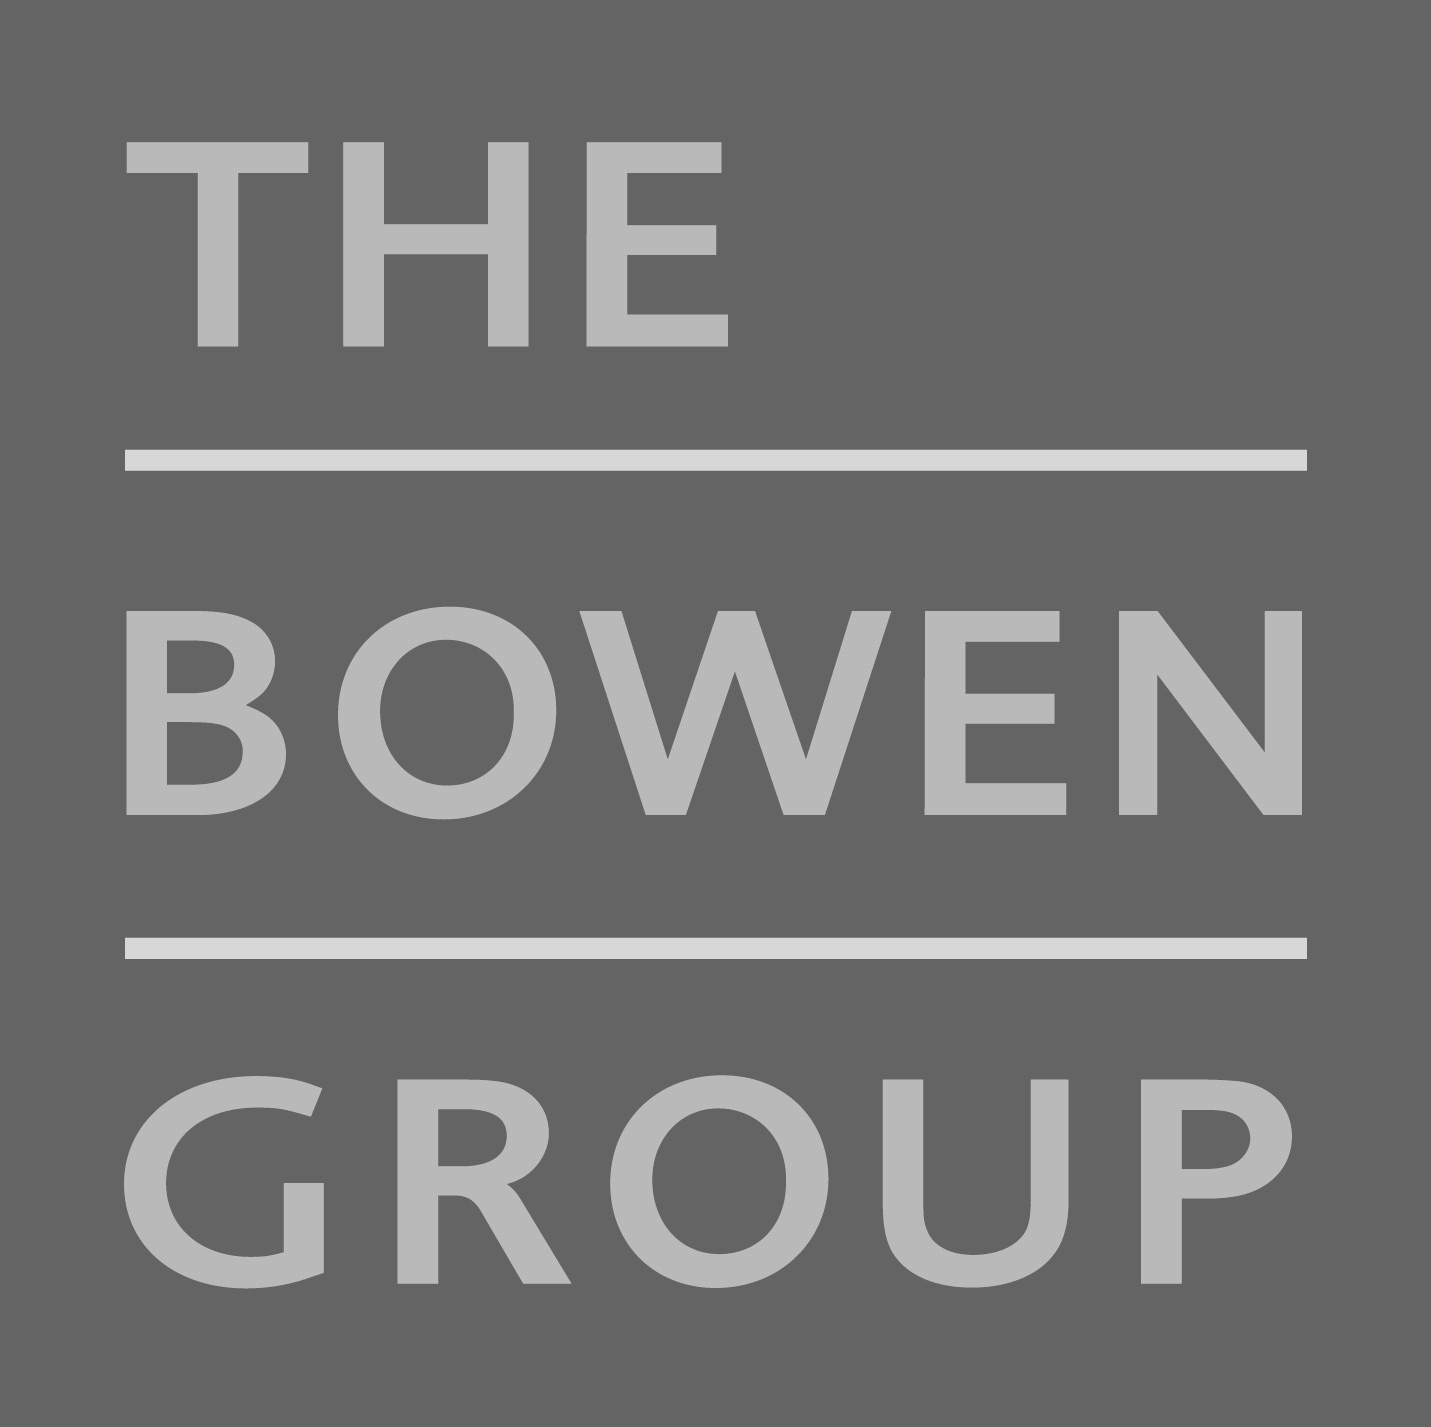 The_Bowen_Group_2color.png